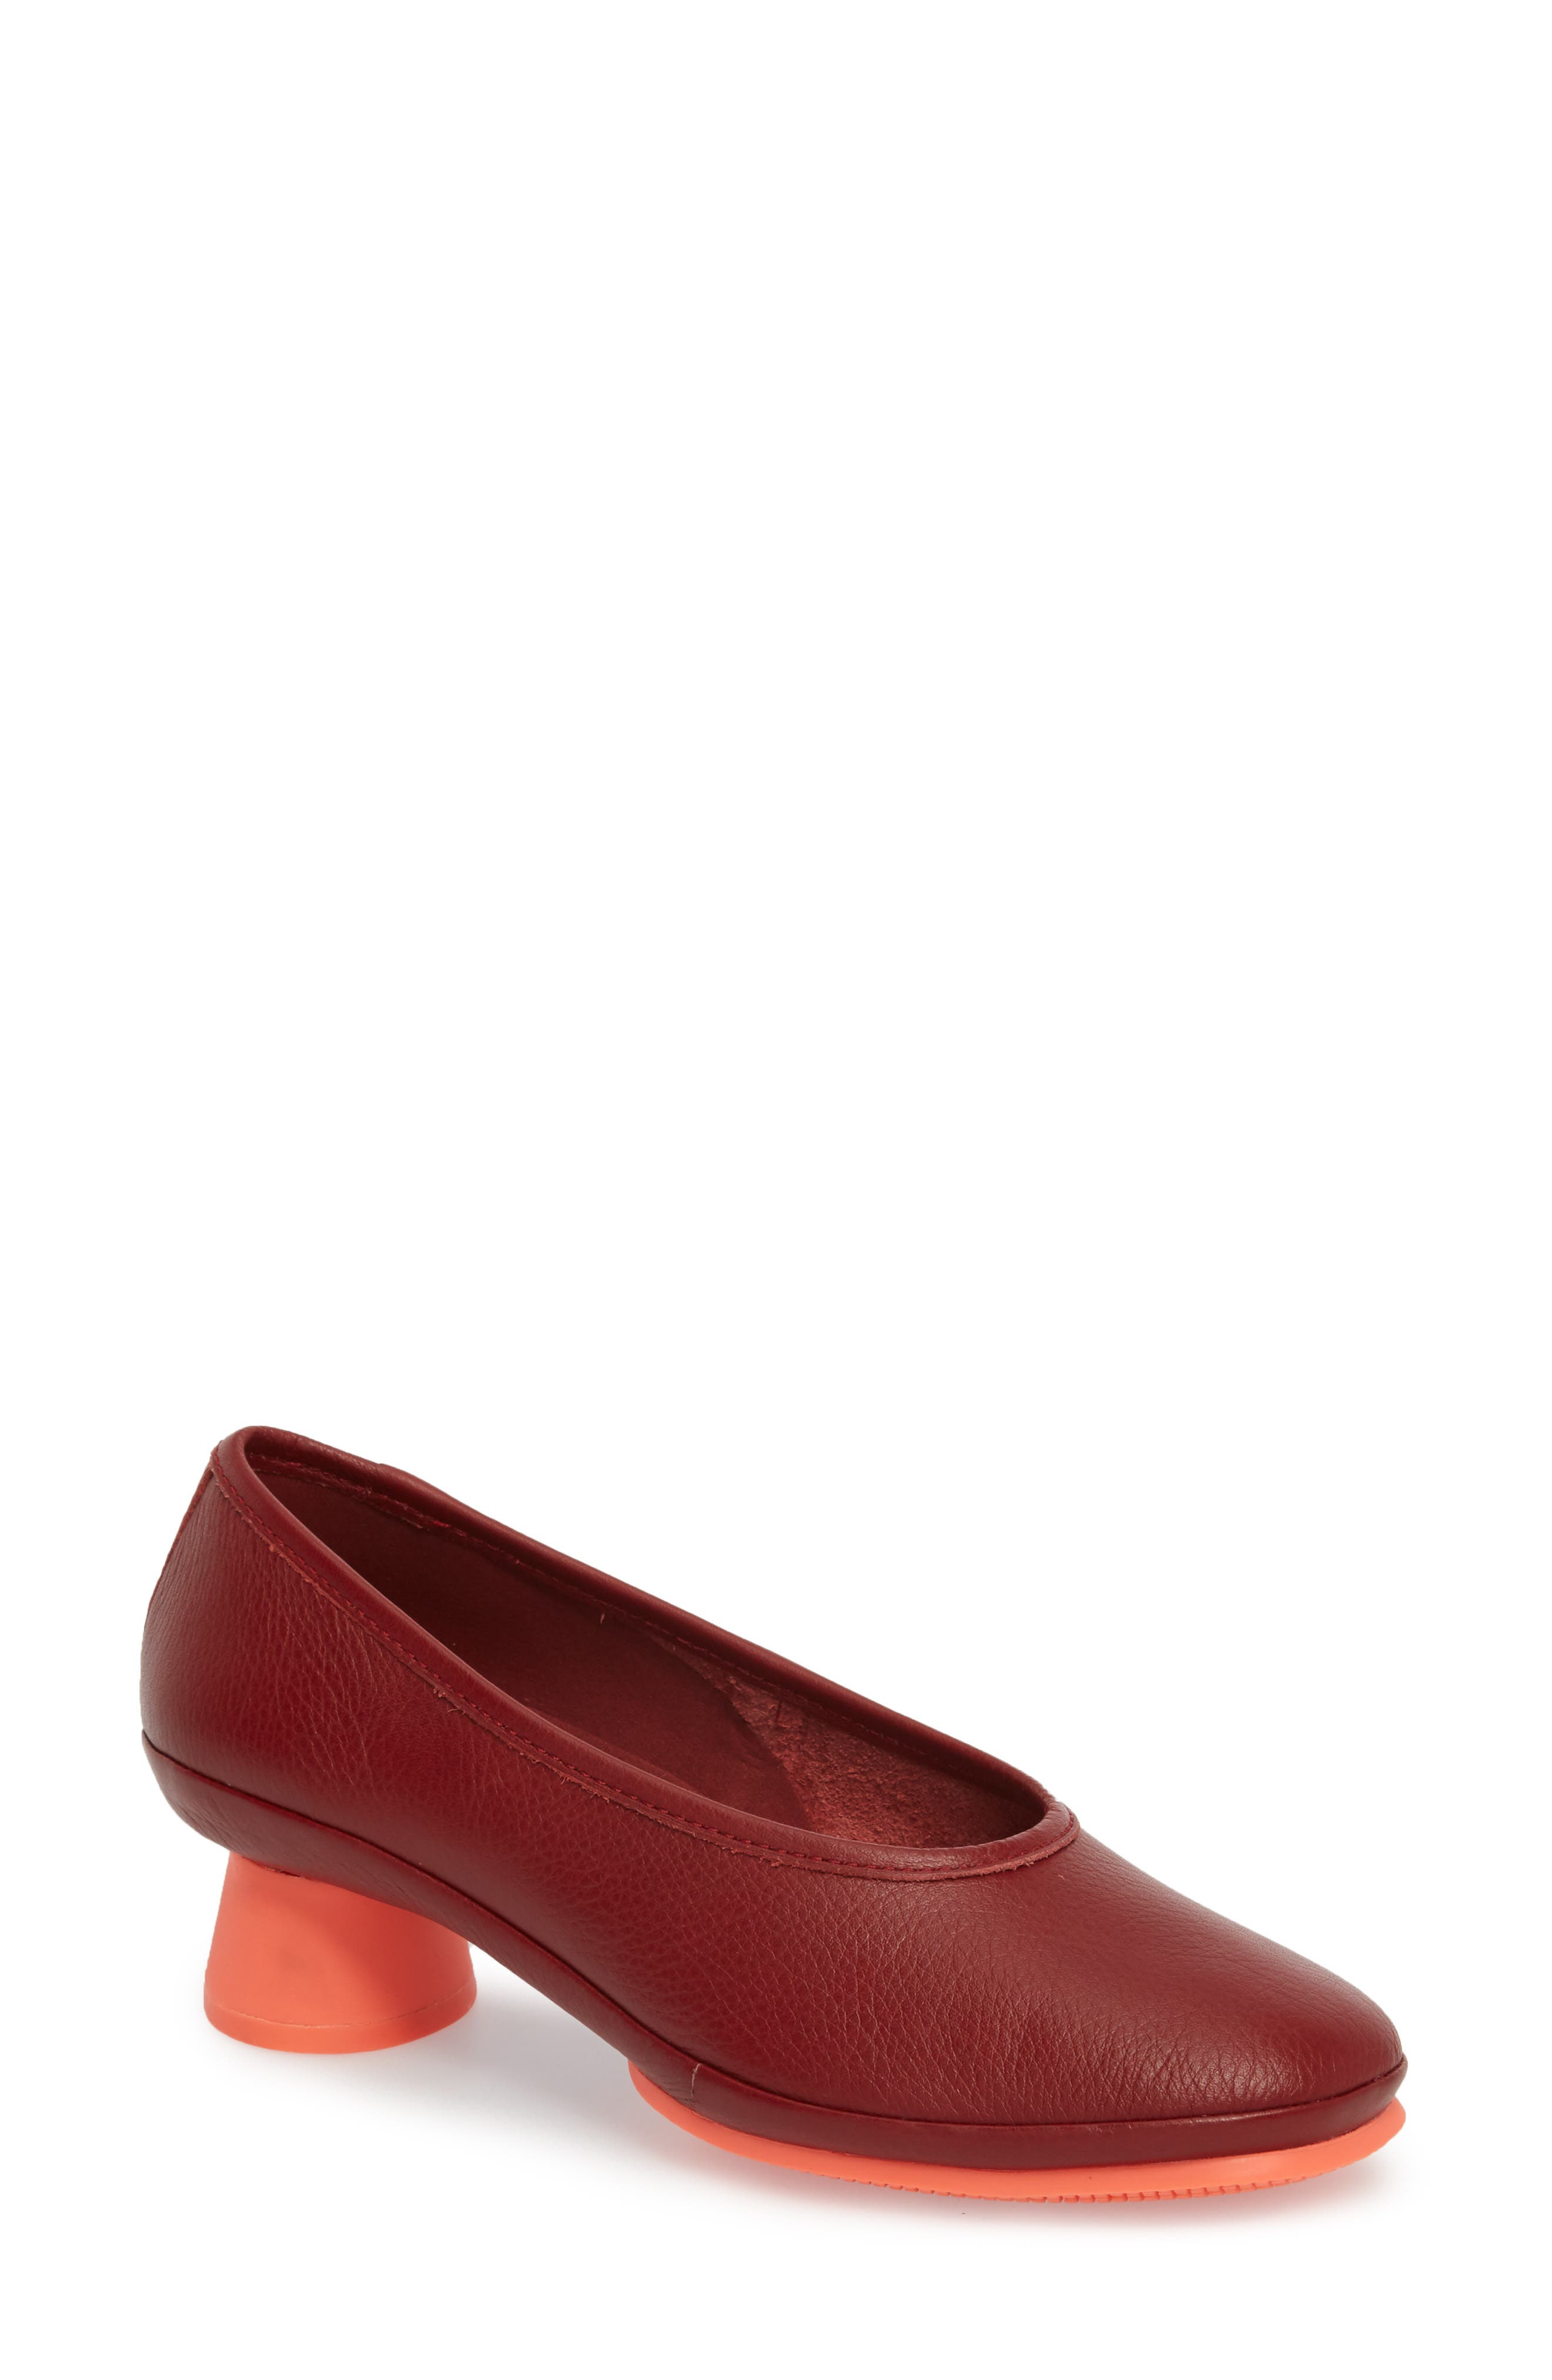 Alright Cone Heel Pump,                             Main thumbnail 1, color,                             DARK RED LEATEHR